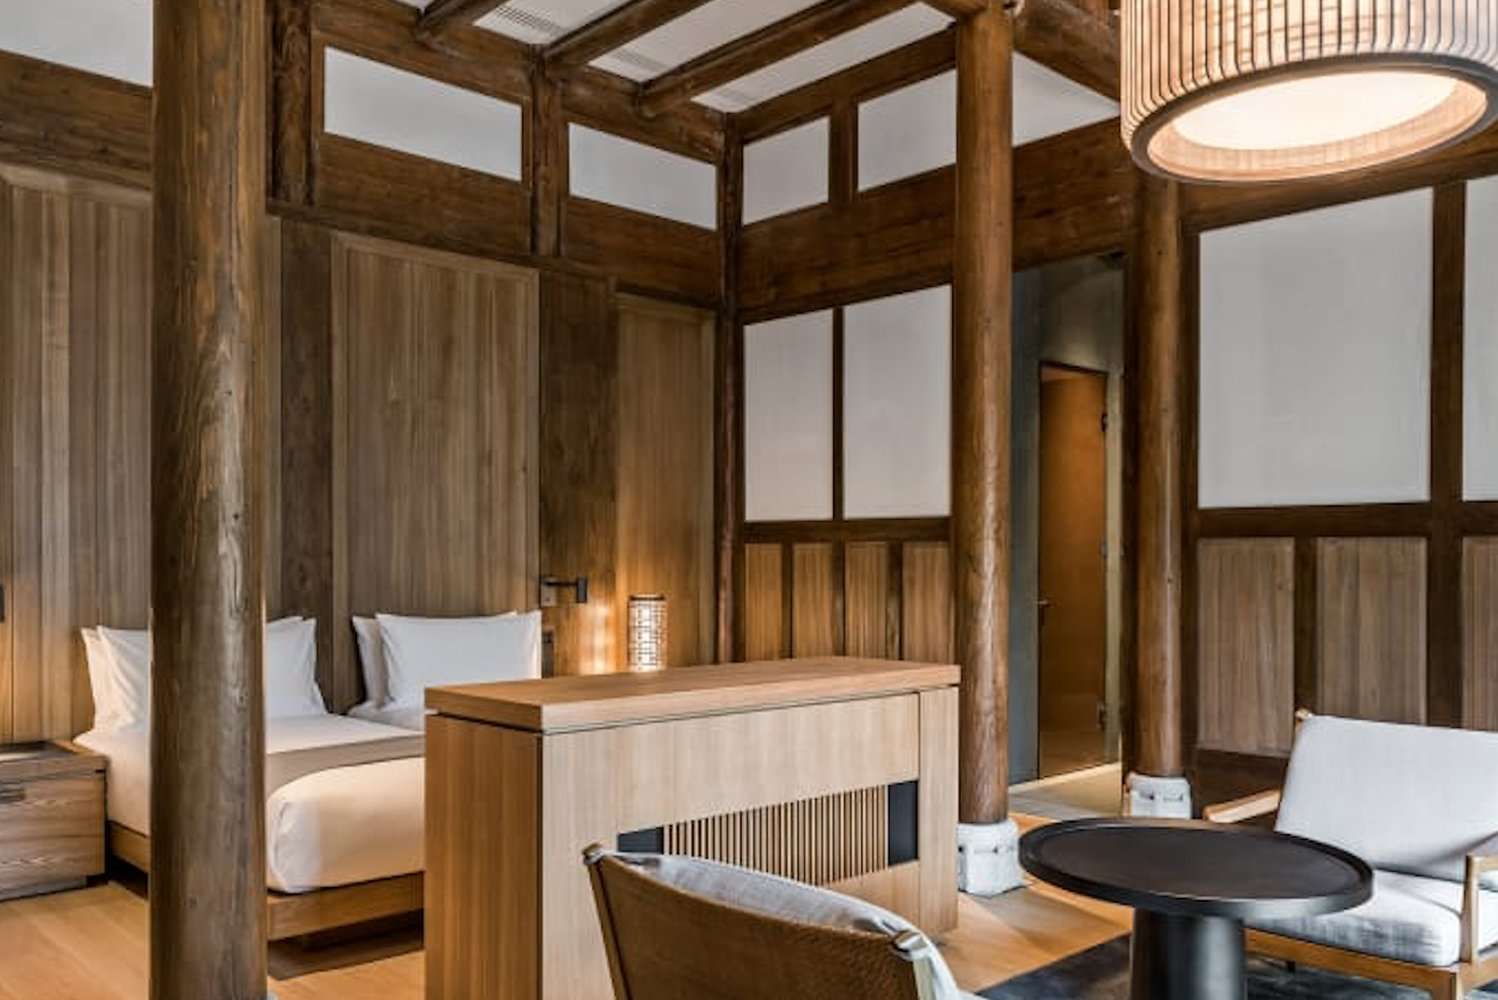 In addition to the villas, there are 24 Ming Courtyard suites with wooden interiors and Asian-influenced minimalism.